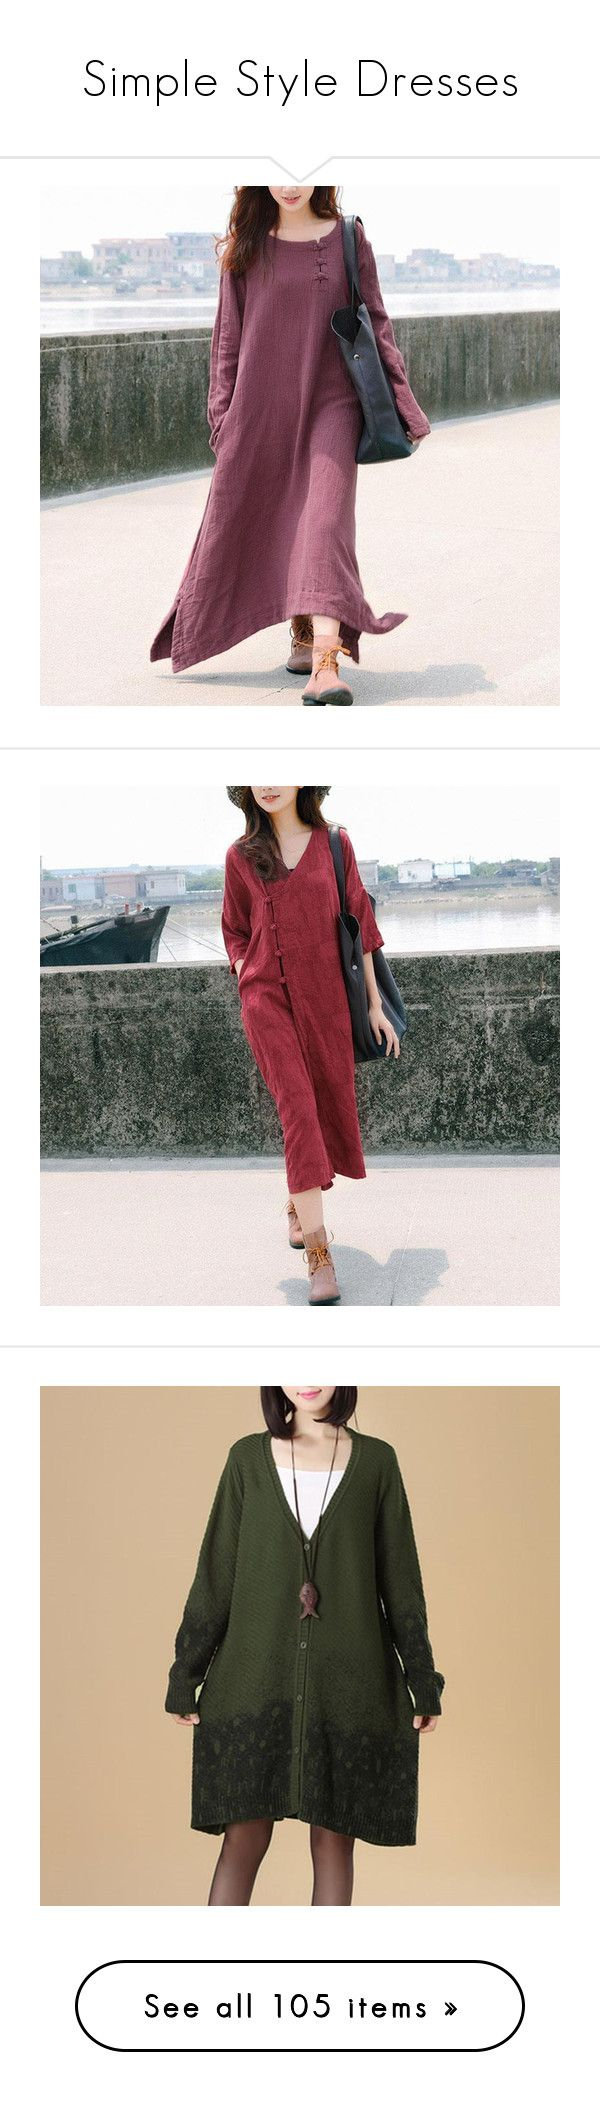 """""""Simple Style Dresses"""" by buykud on Polyvore featuring dresses, red retro dress, retro-inspired dresses, side slit dress, purple dress, long sleeve day dresses, sleeved dresses, retro-style dresses, pocket dress and red sleeve dress"""